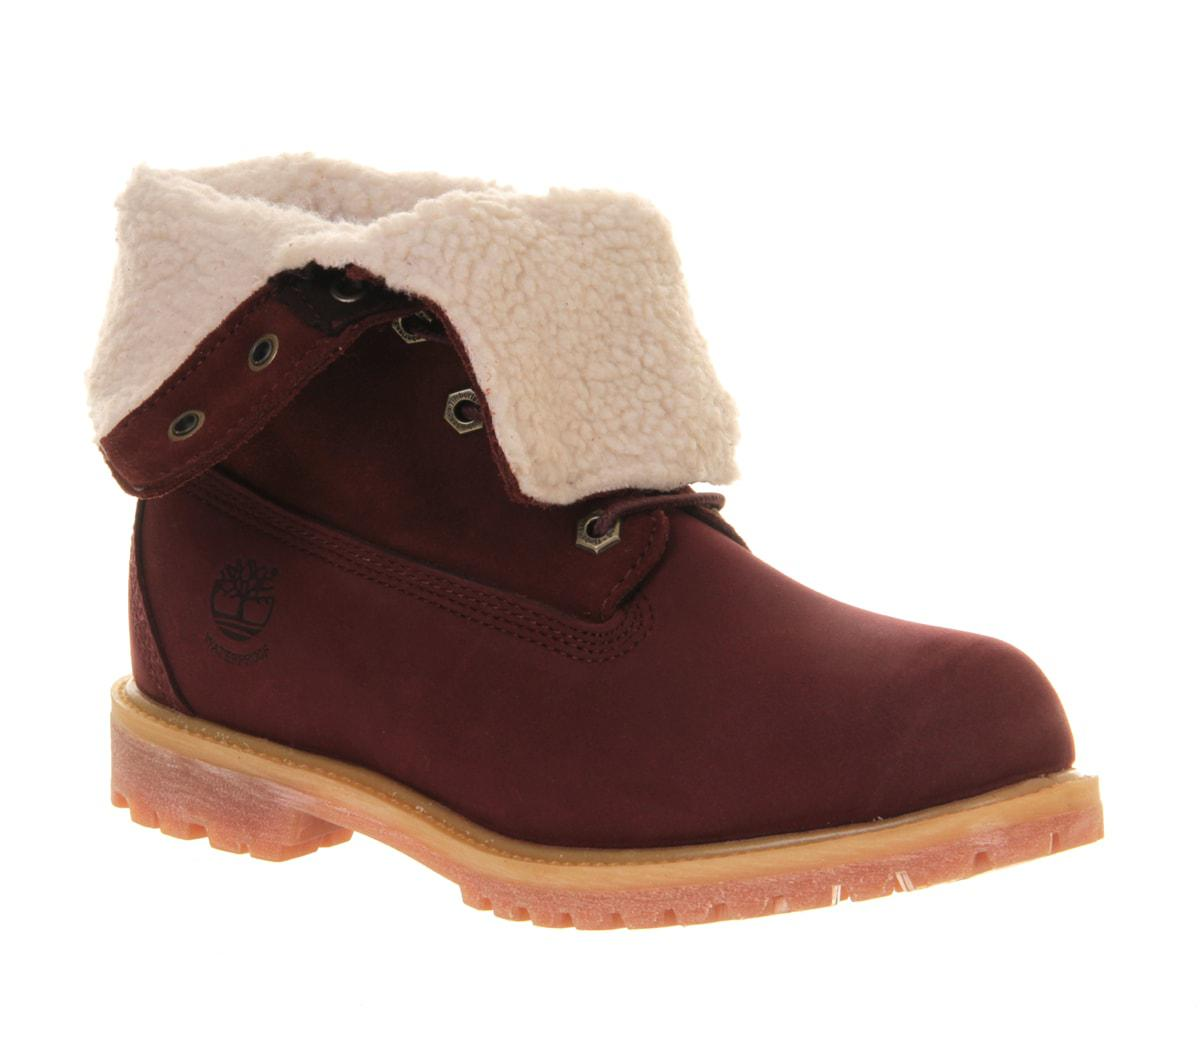 Timberland Teddy Fleece Womens Ankle Boots Prune Leather